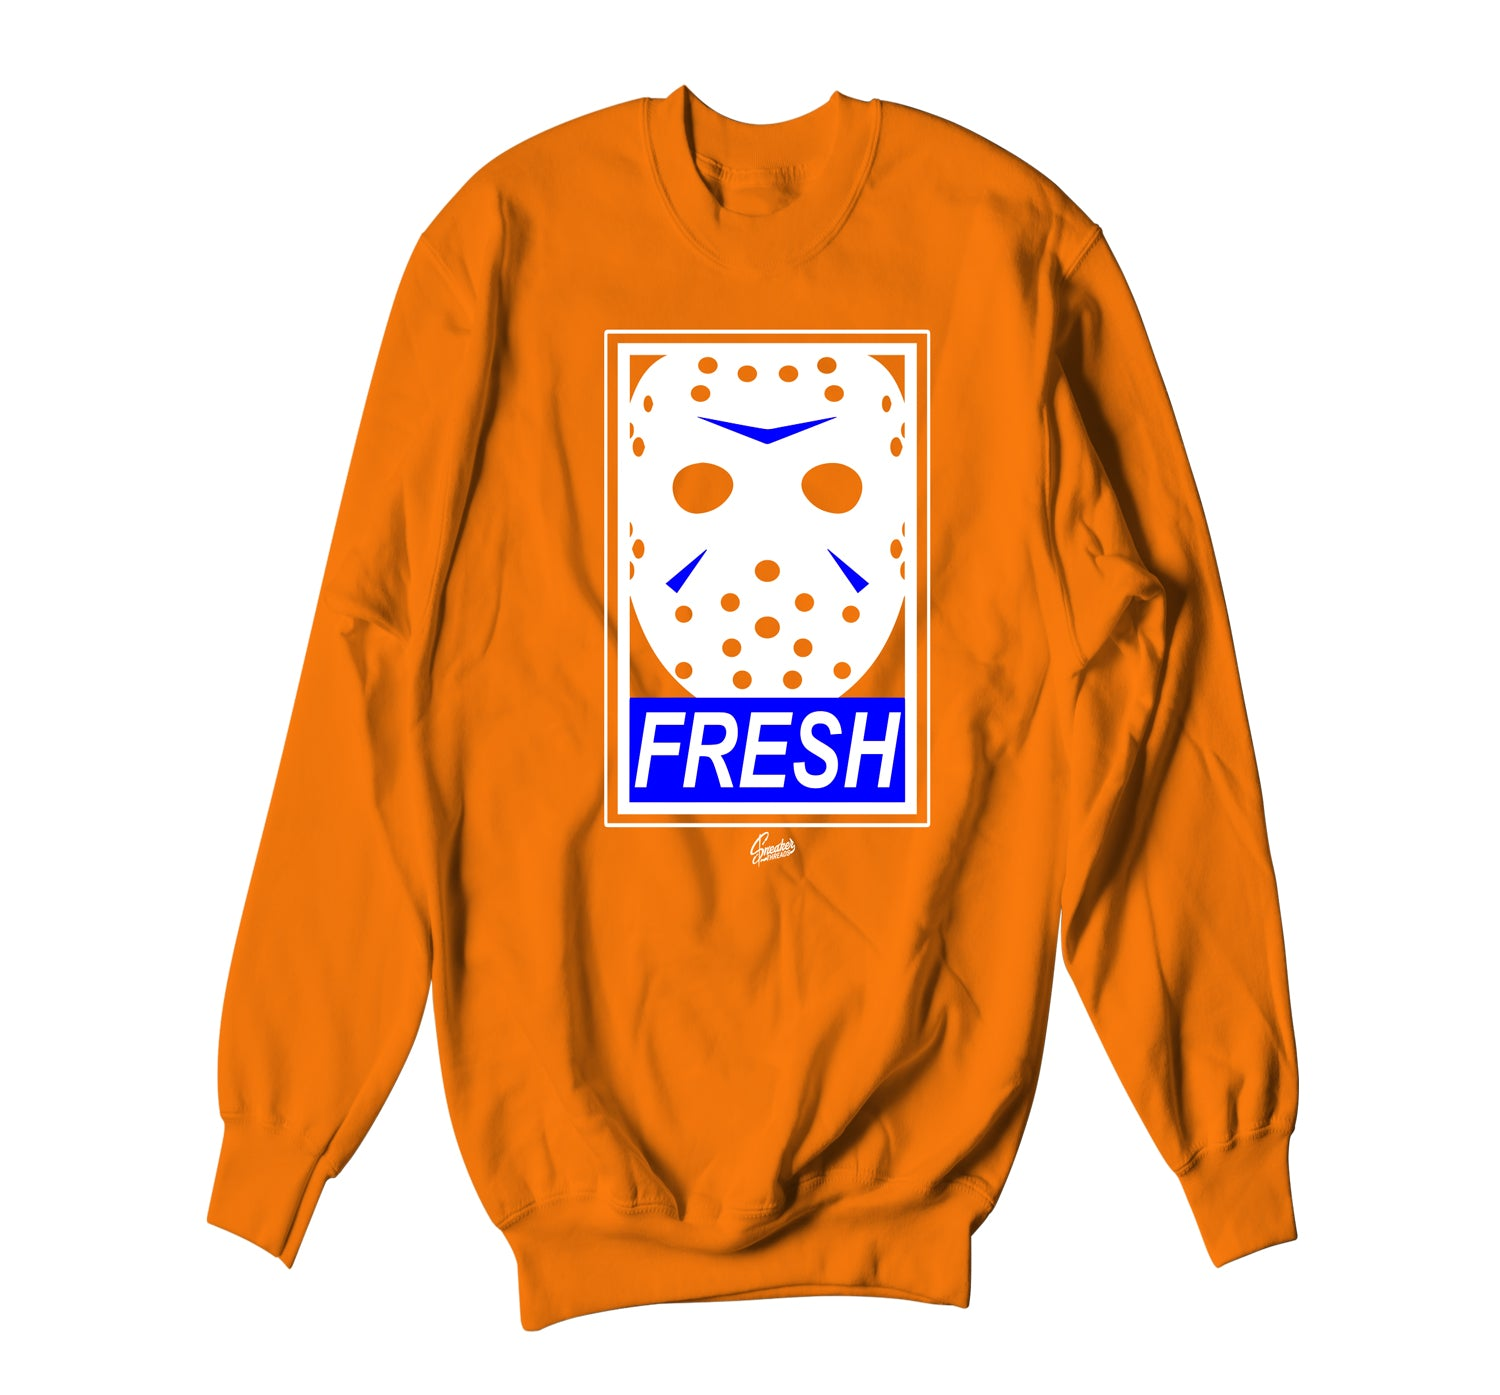 Jordan 3 Knicks Fresh Death Sweater